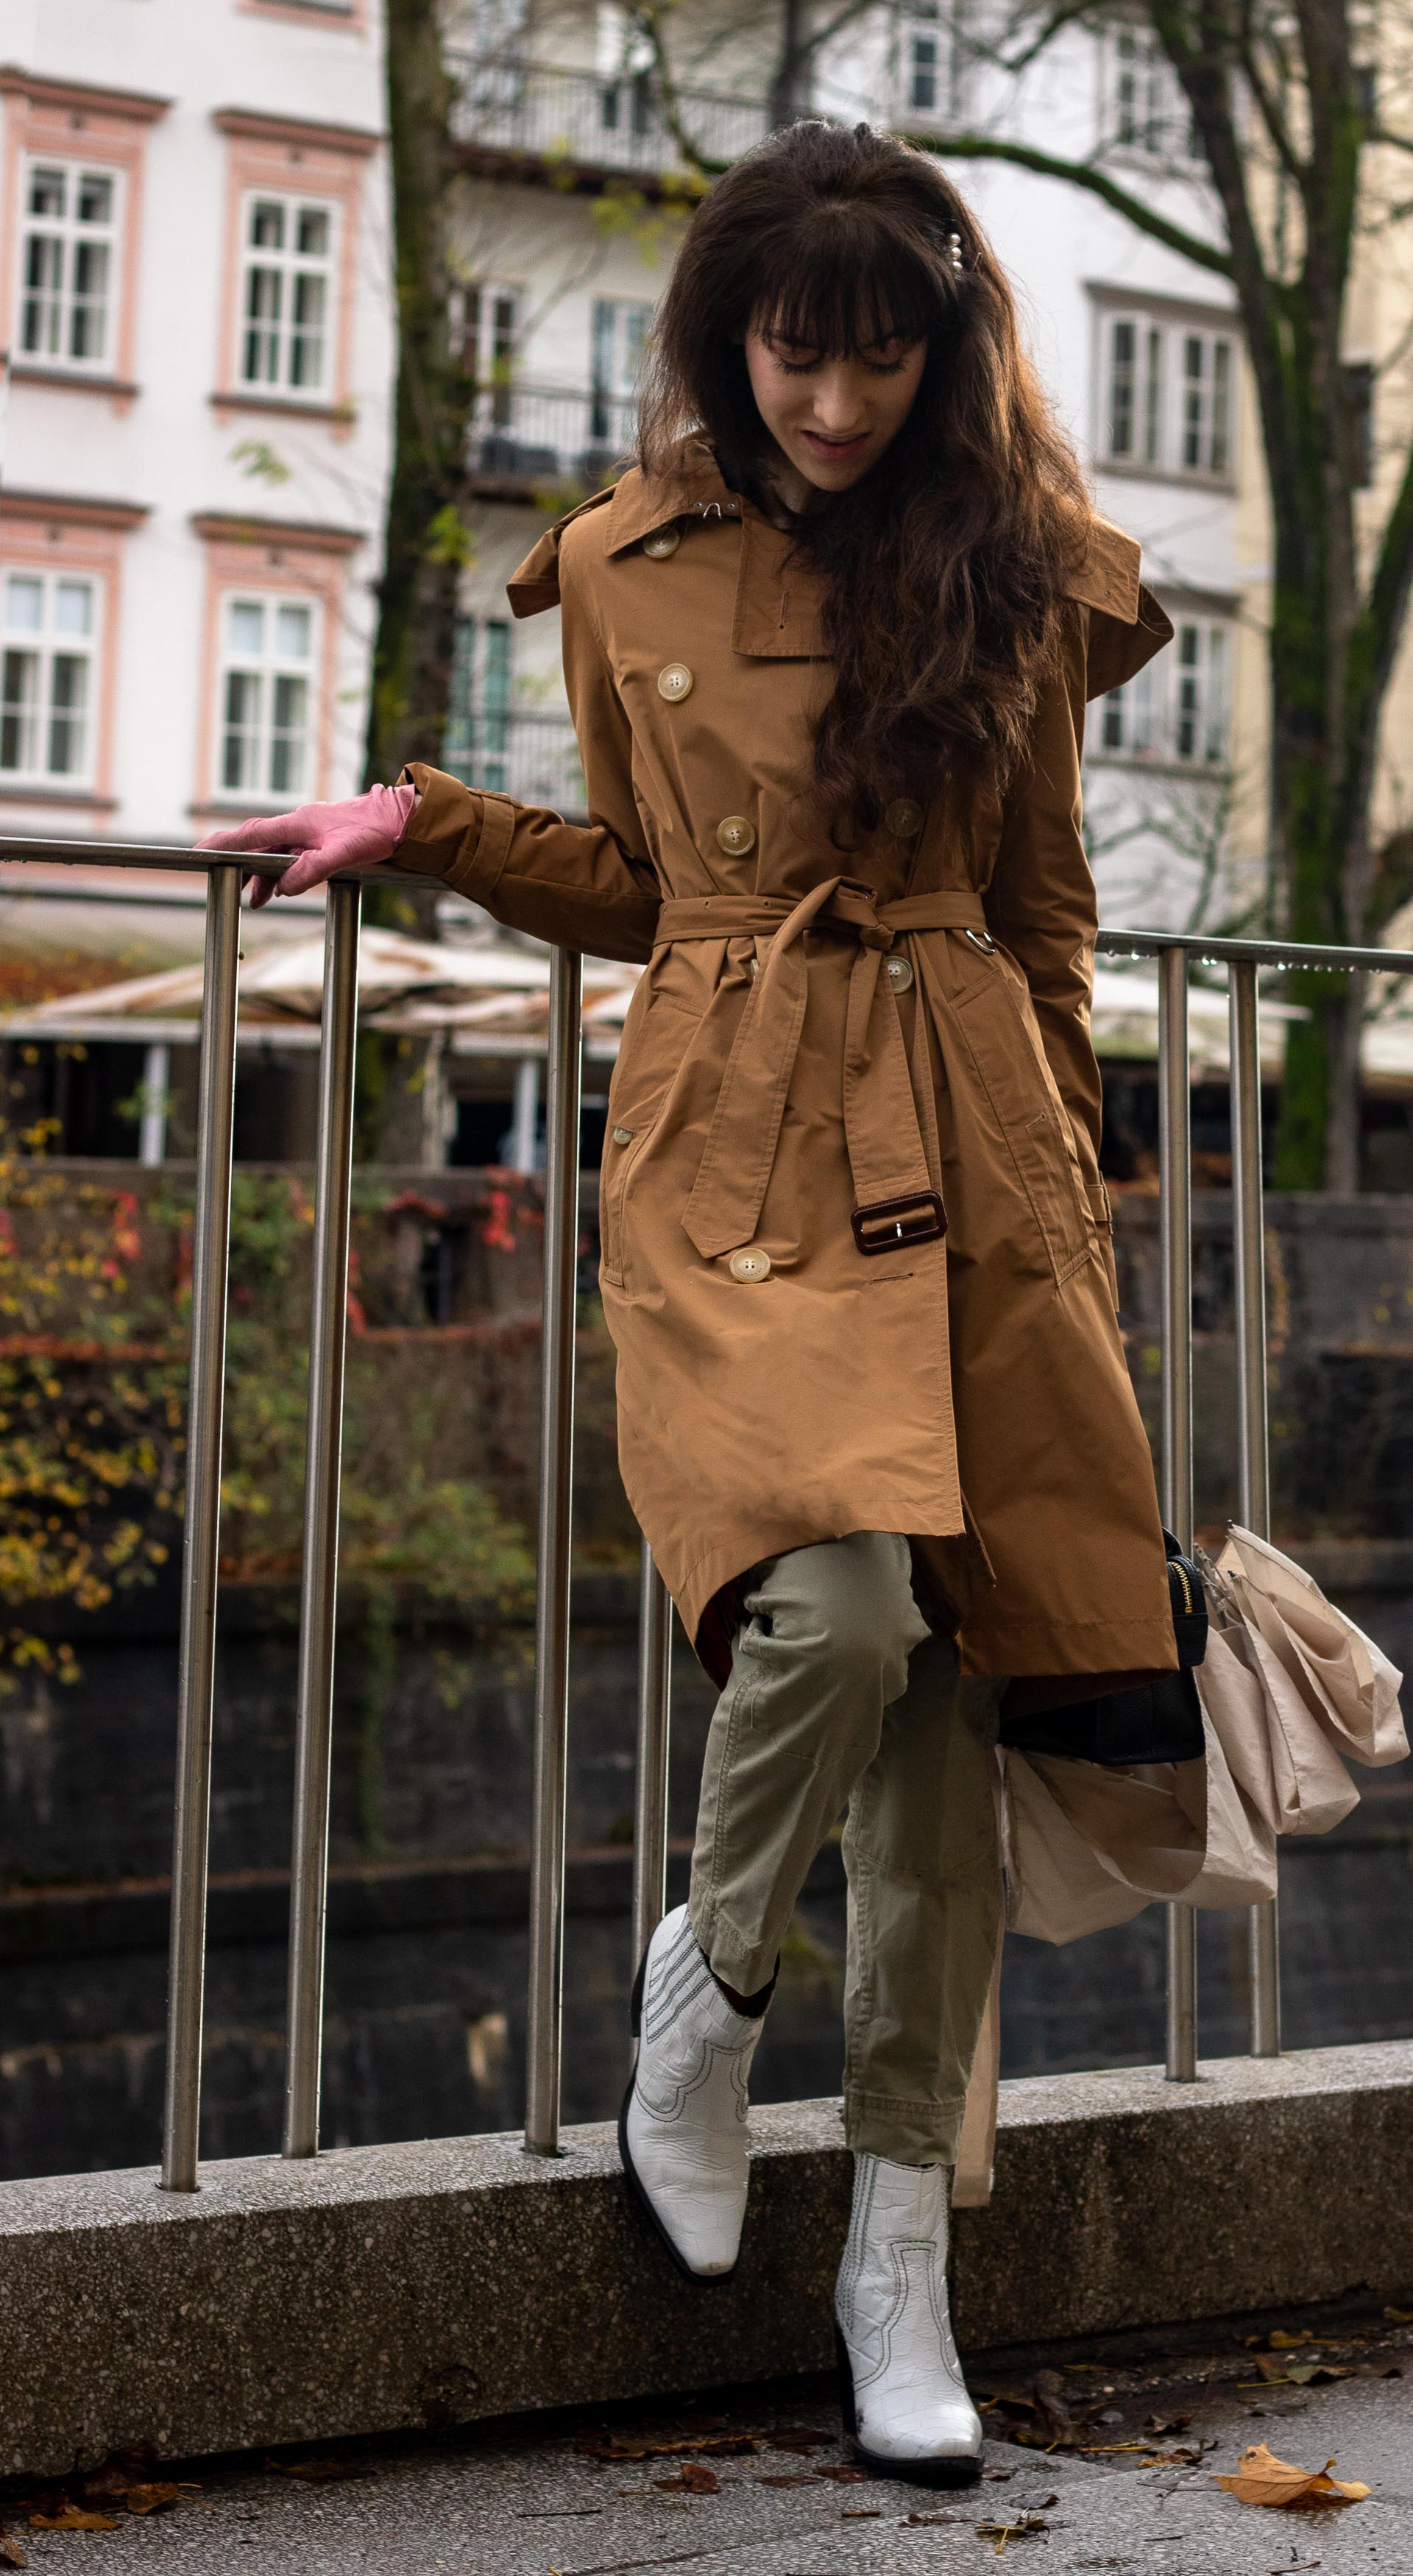 Fashion blogger Veronika Lipar of Brunette from Wall Street wearing white Ganni booties camel Burberry trench coat Re/Done cargo pants pink gloves umbrella in the rain